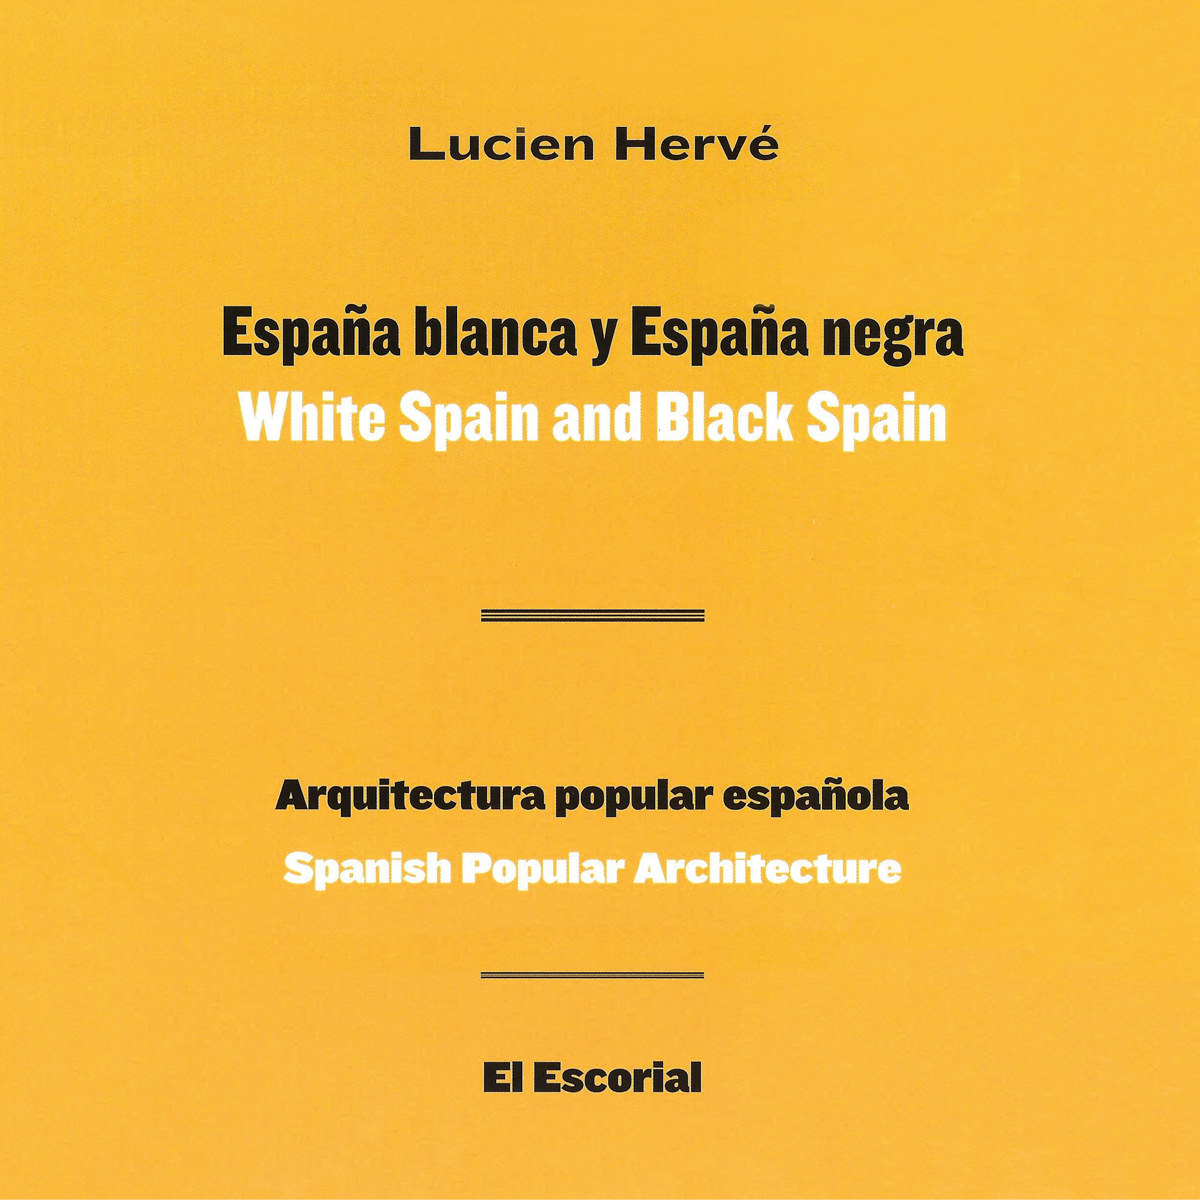 White Spain and Black Spain